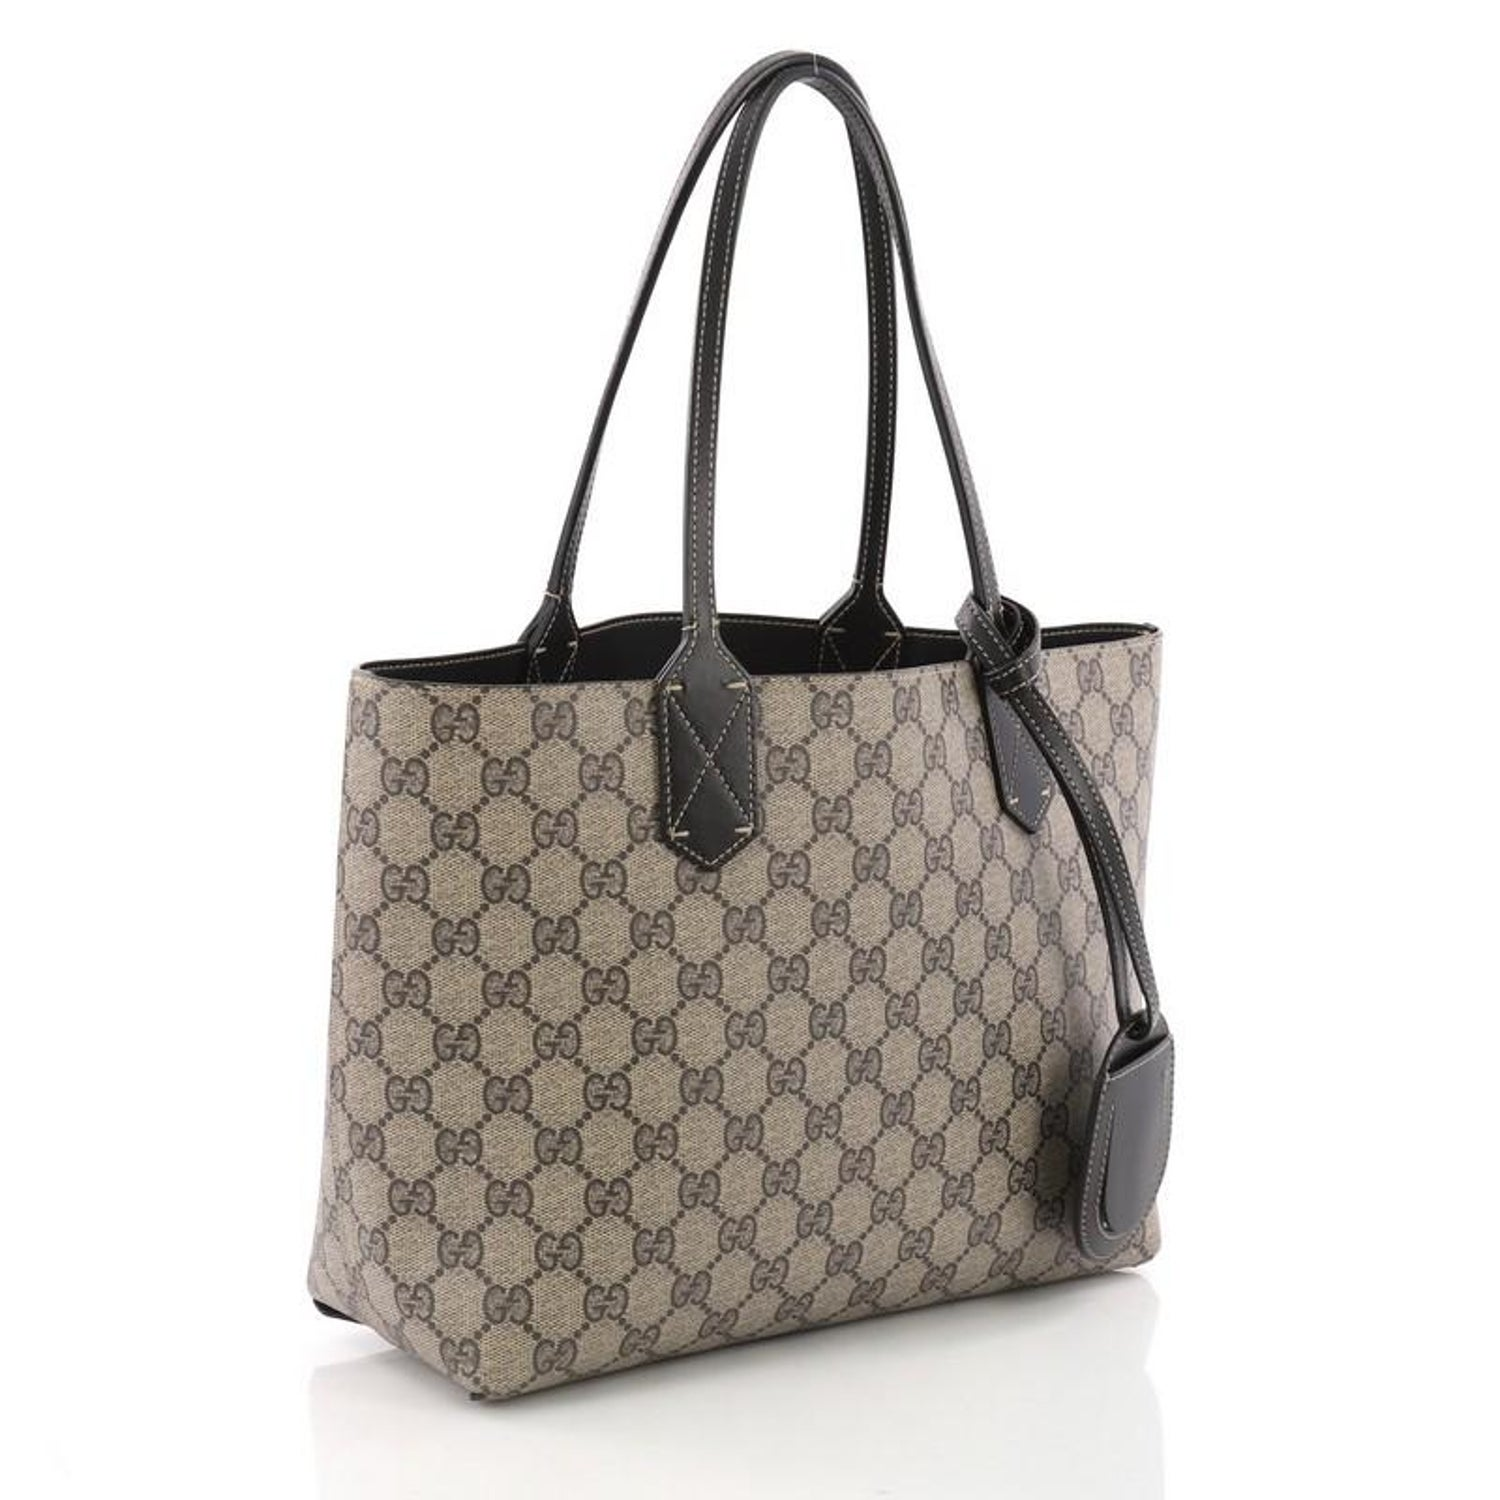 75913b91cc04 Gucci Reversible Tote GG Print Leather Small at 1stdibs